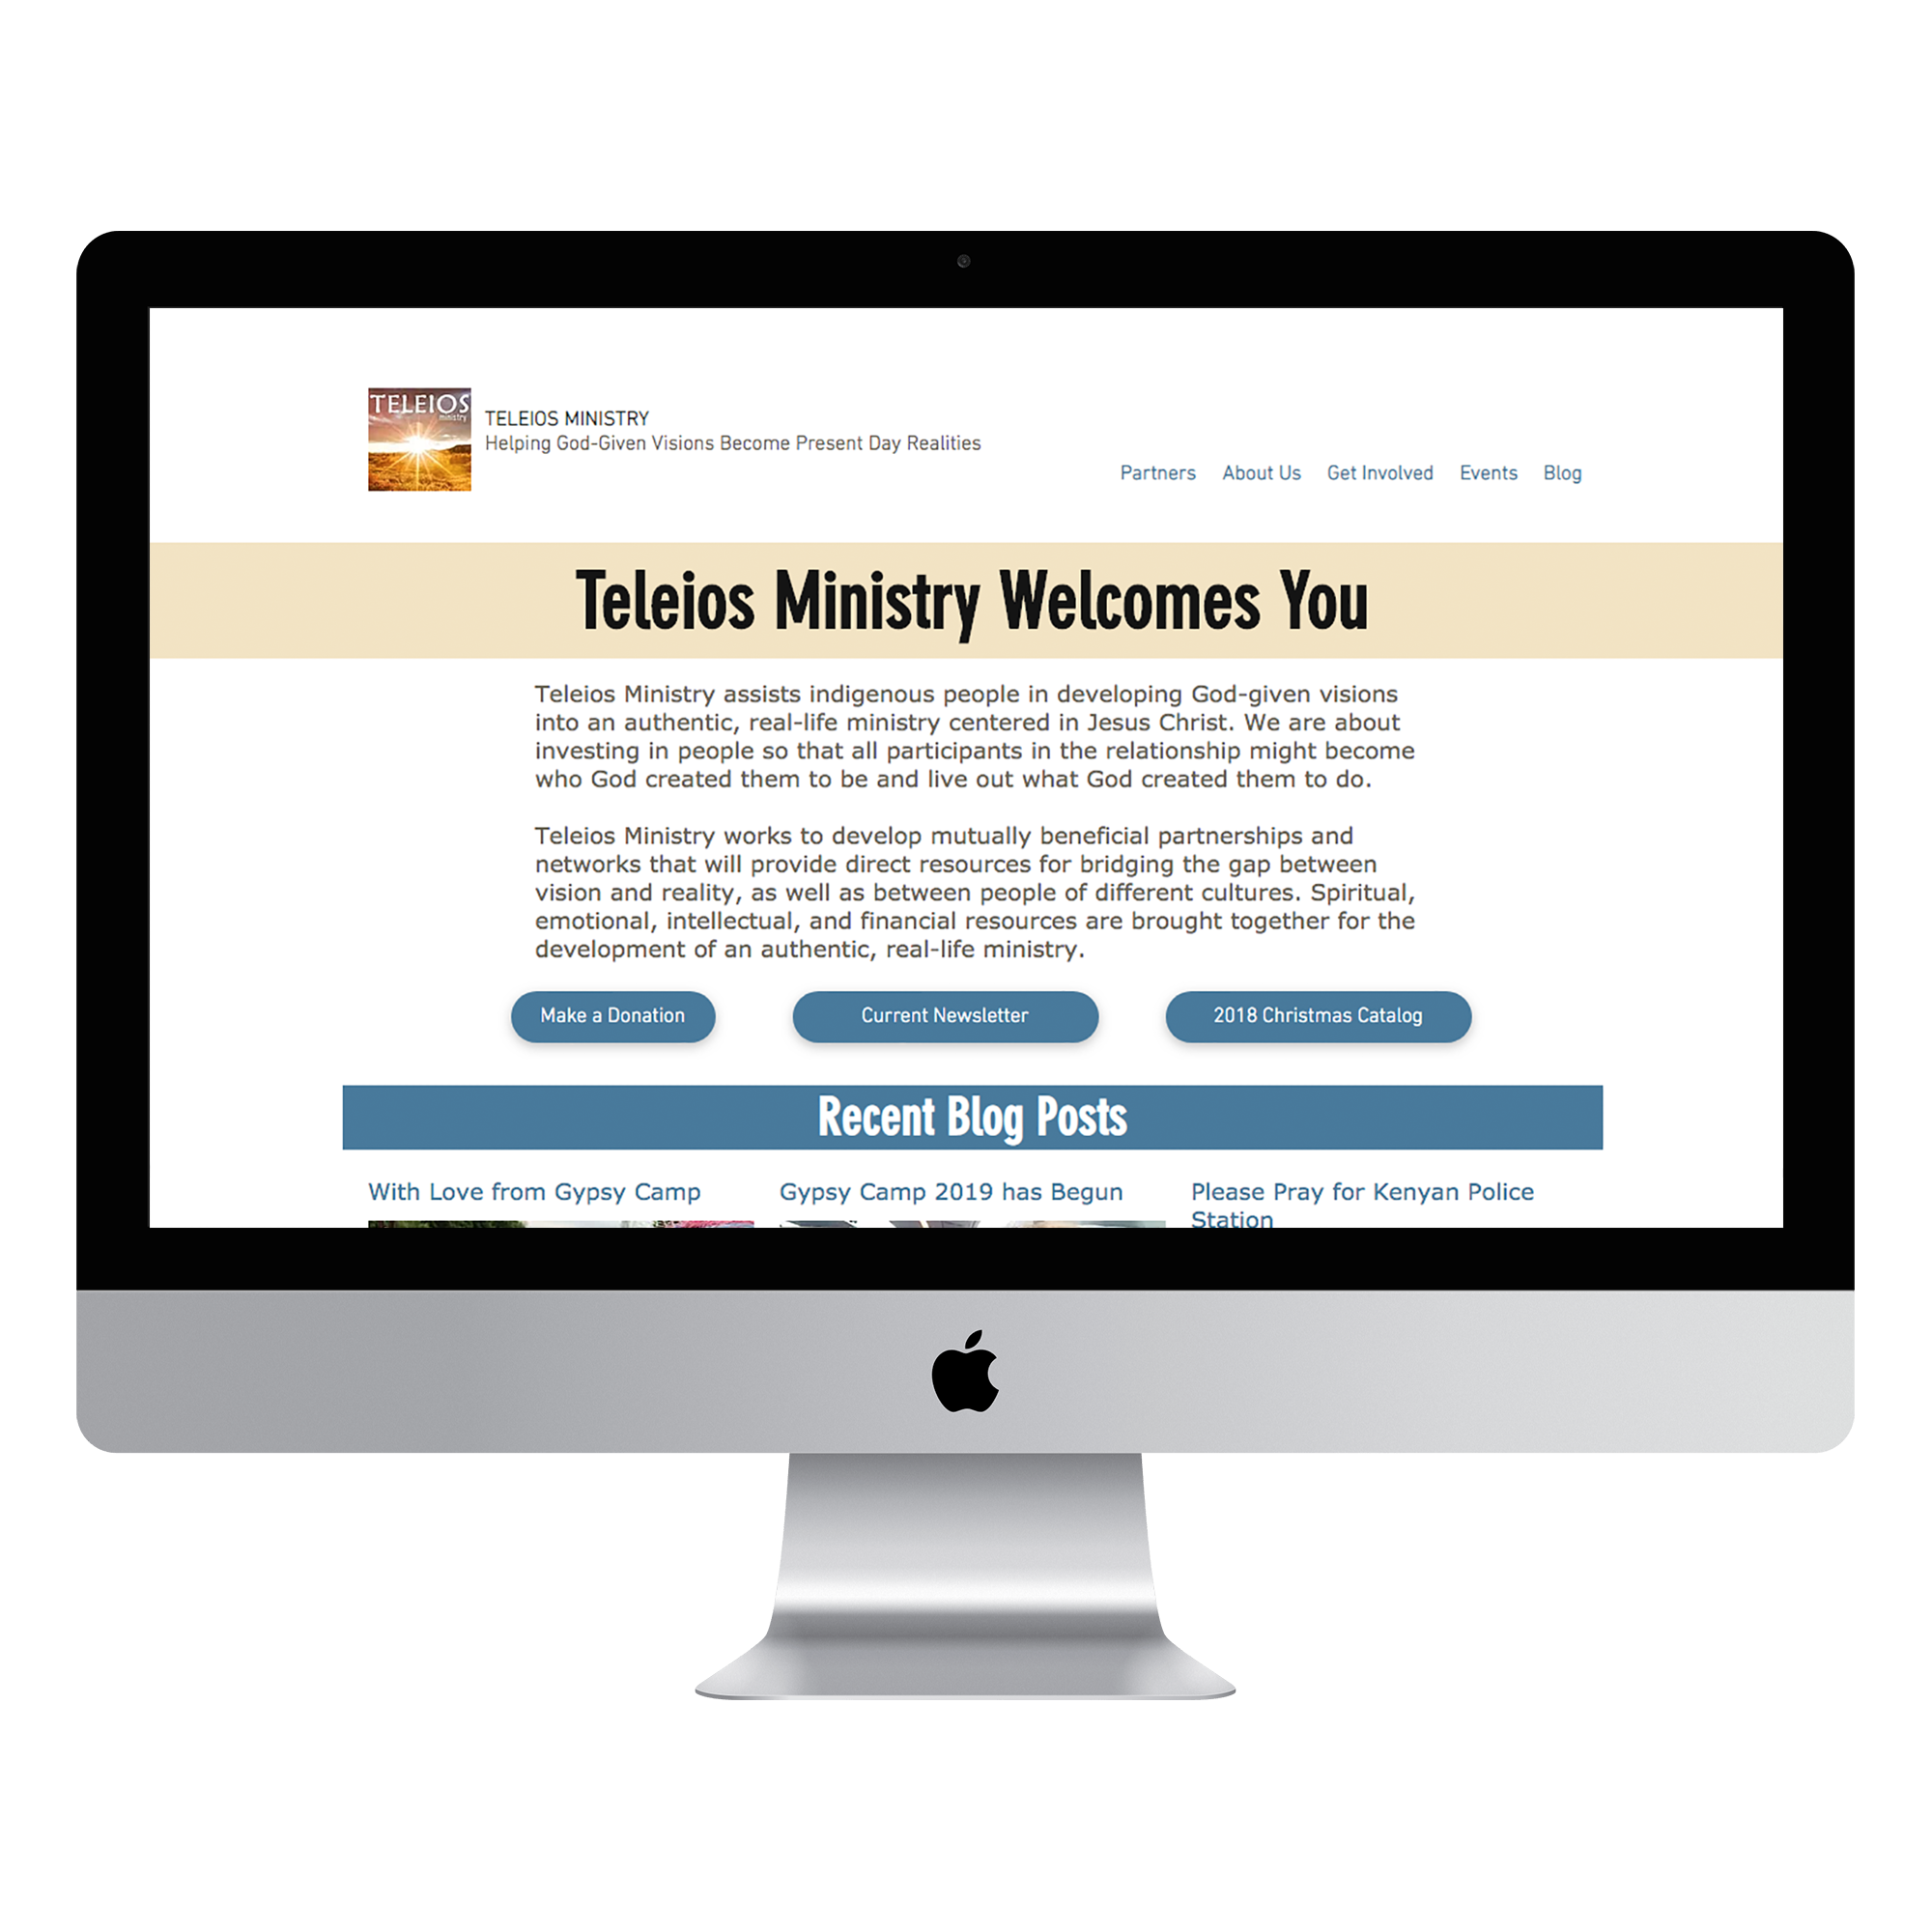 Teleios Ministry - After - Desktop - Mockup